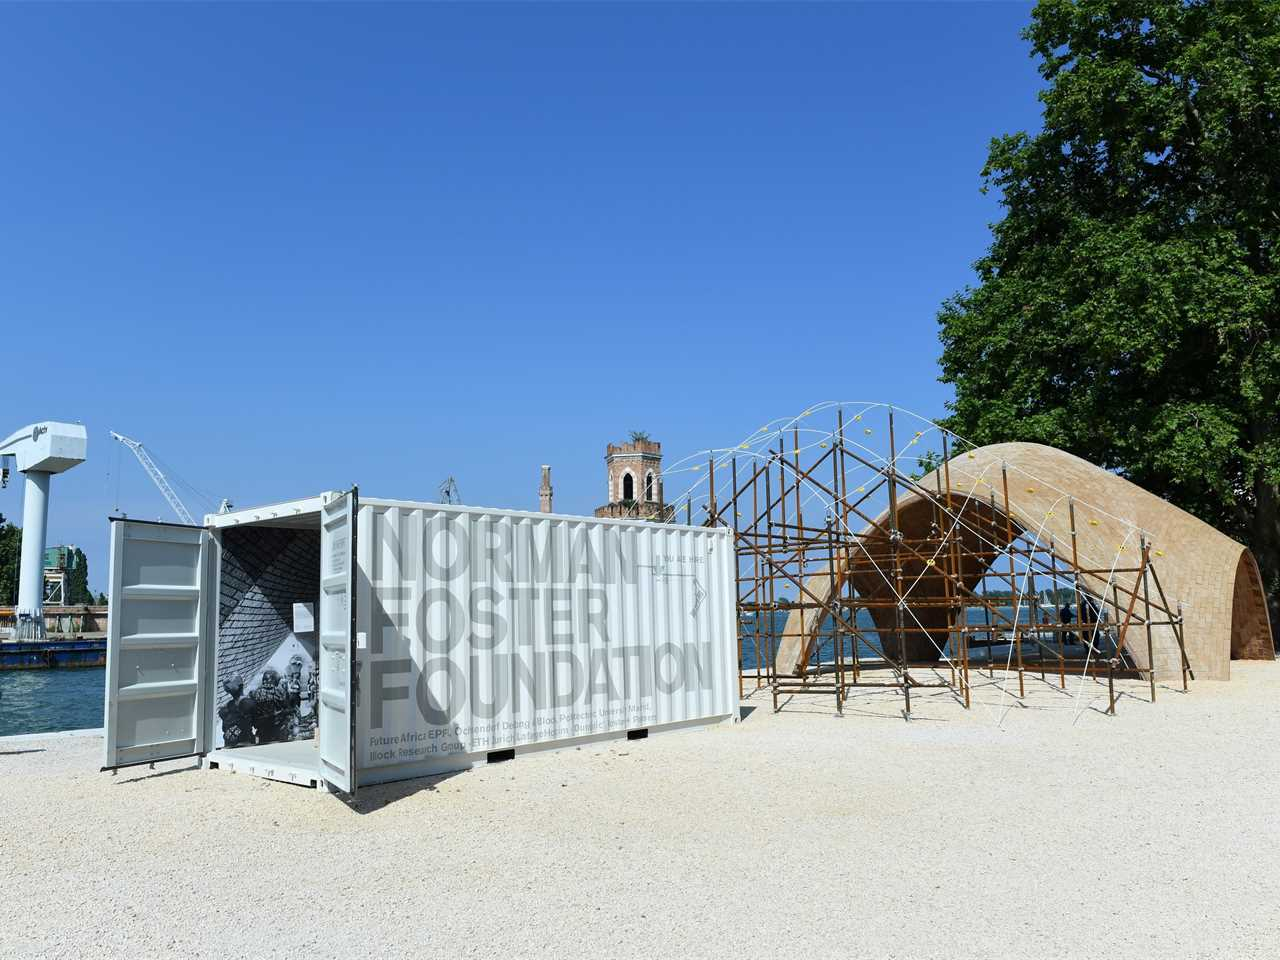 Prototype Droneport Shell – 15th International Architecture Biennale, Venice, Italy